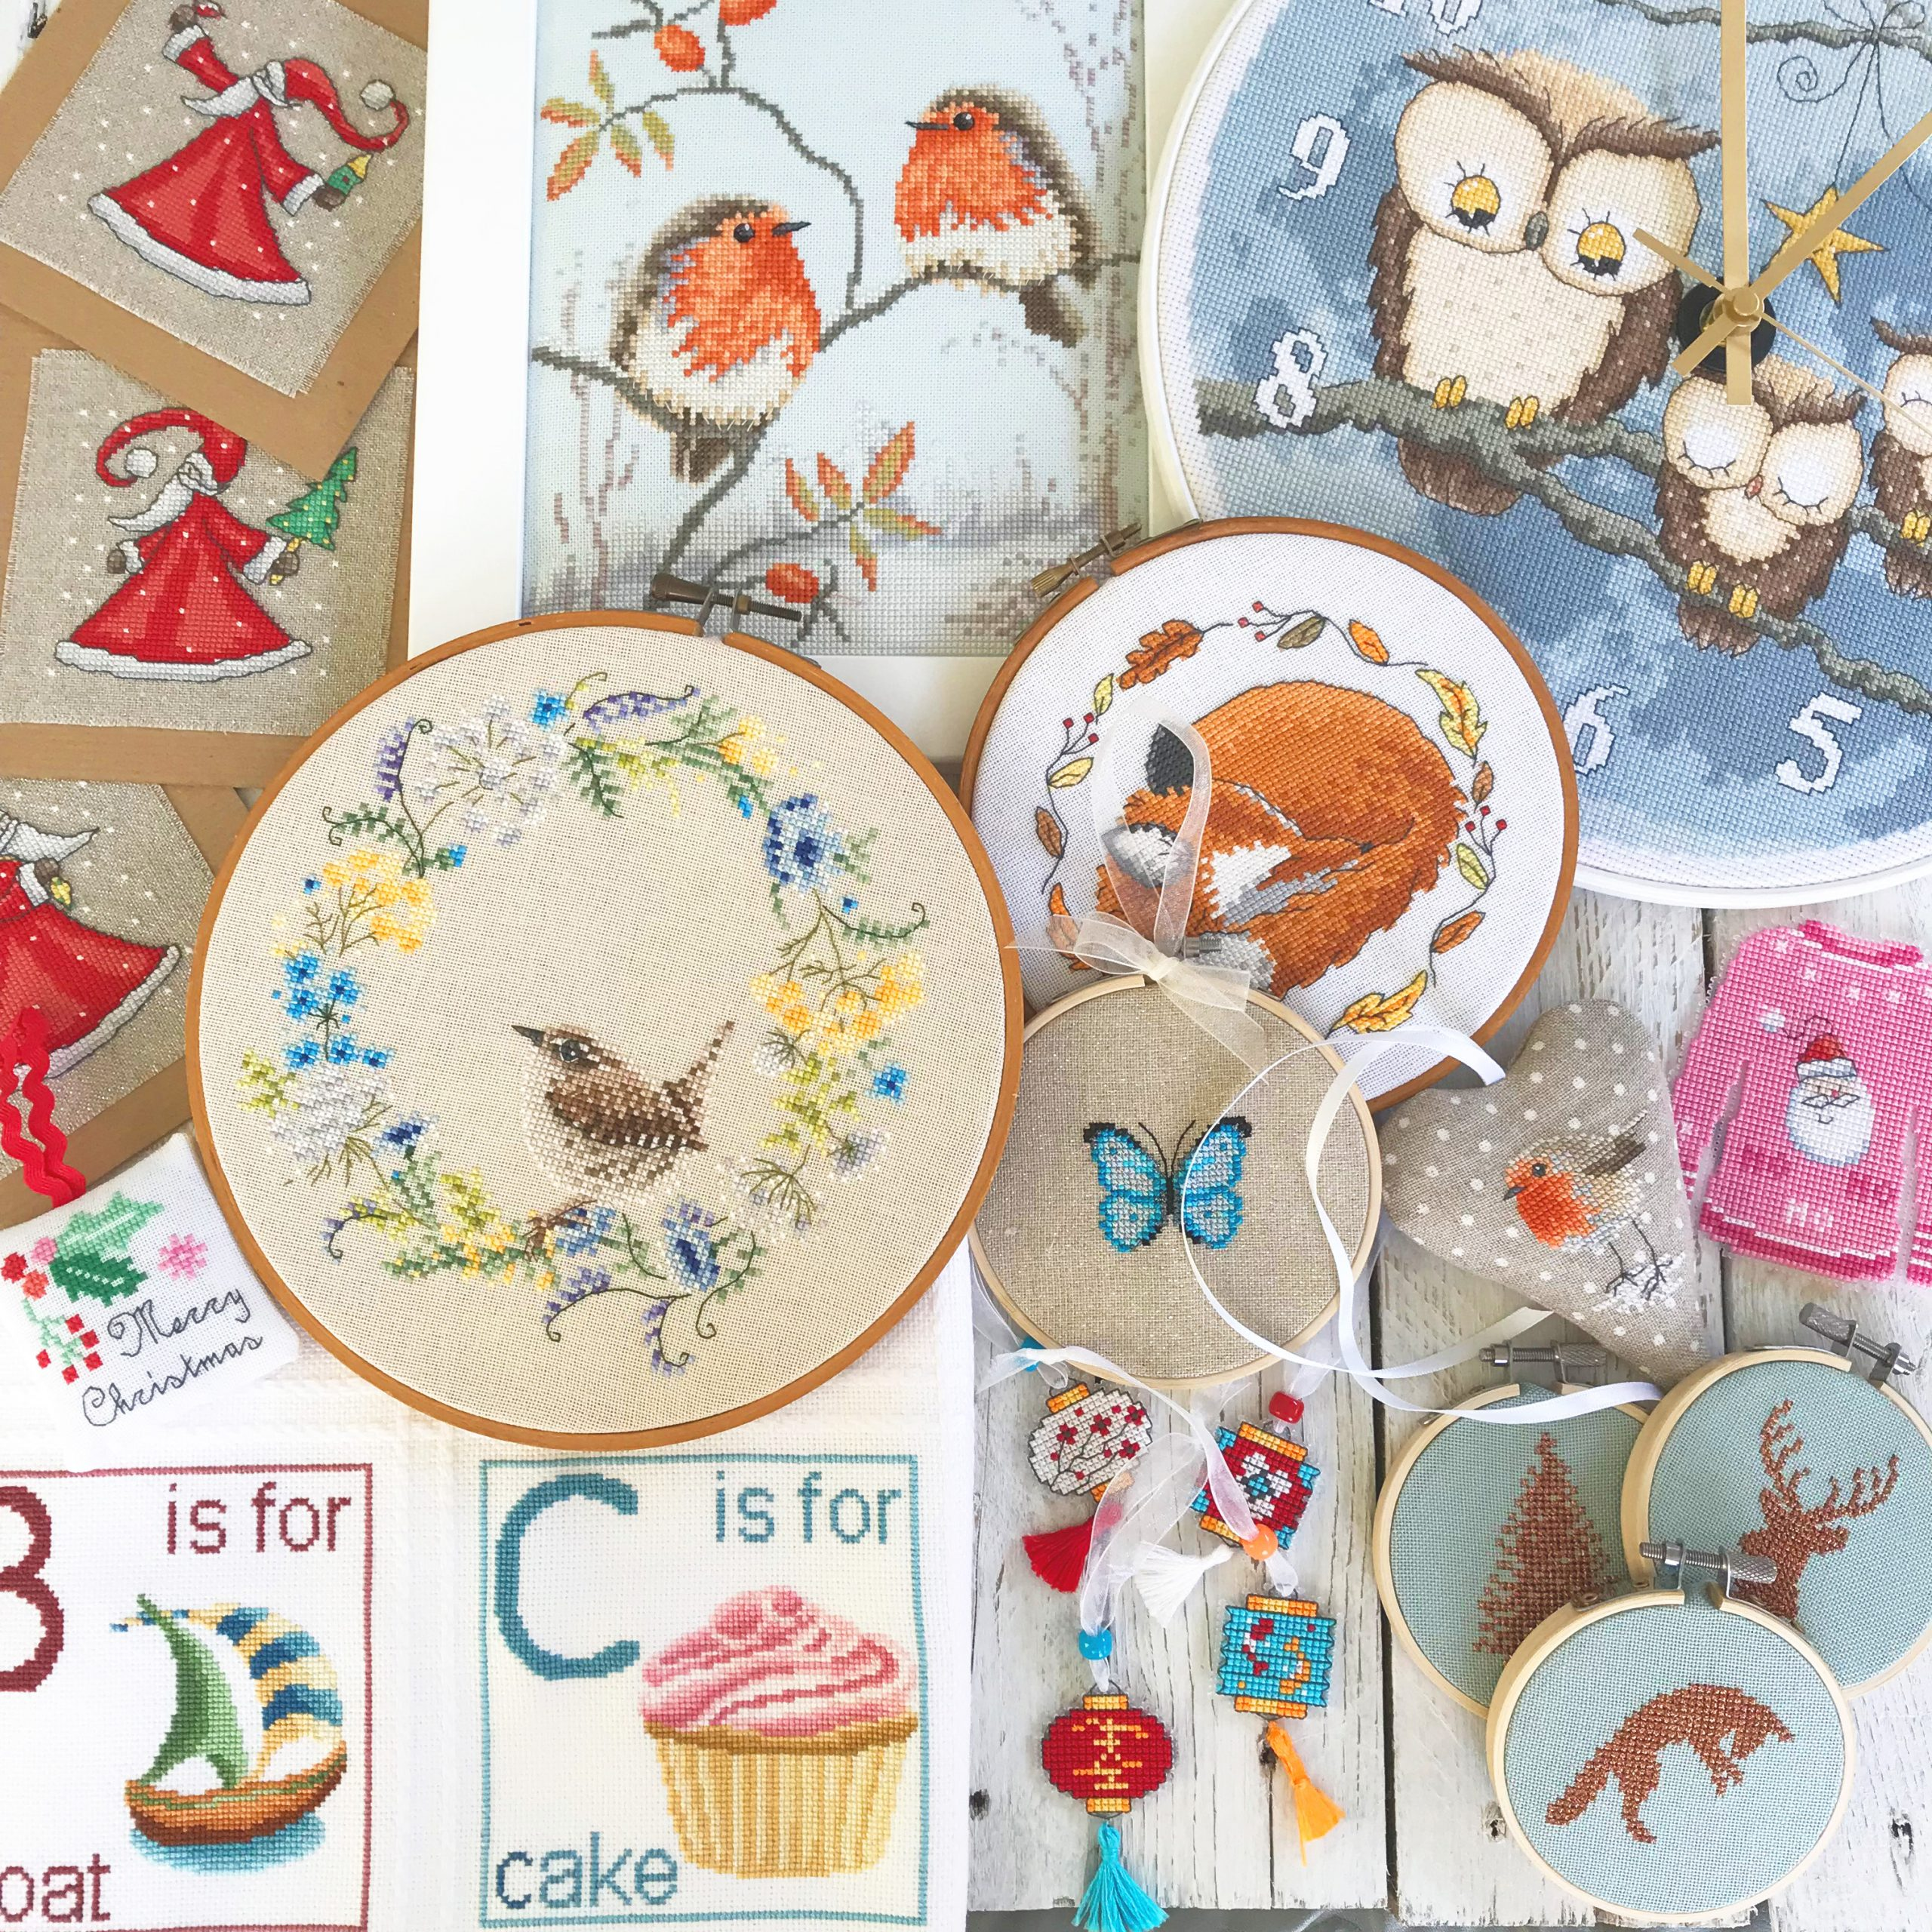 Latest cross stitch designs by Lucie Heaton Cross Stitch Designs